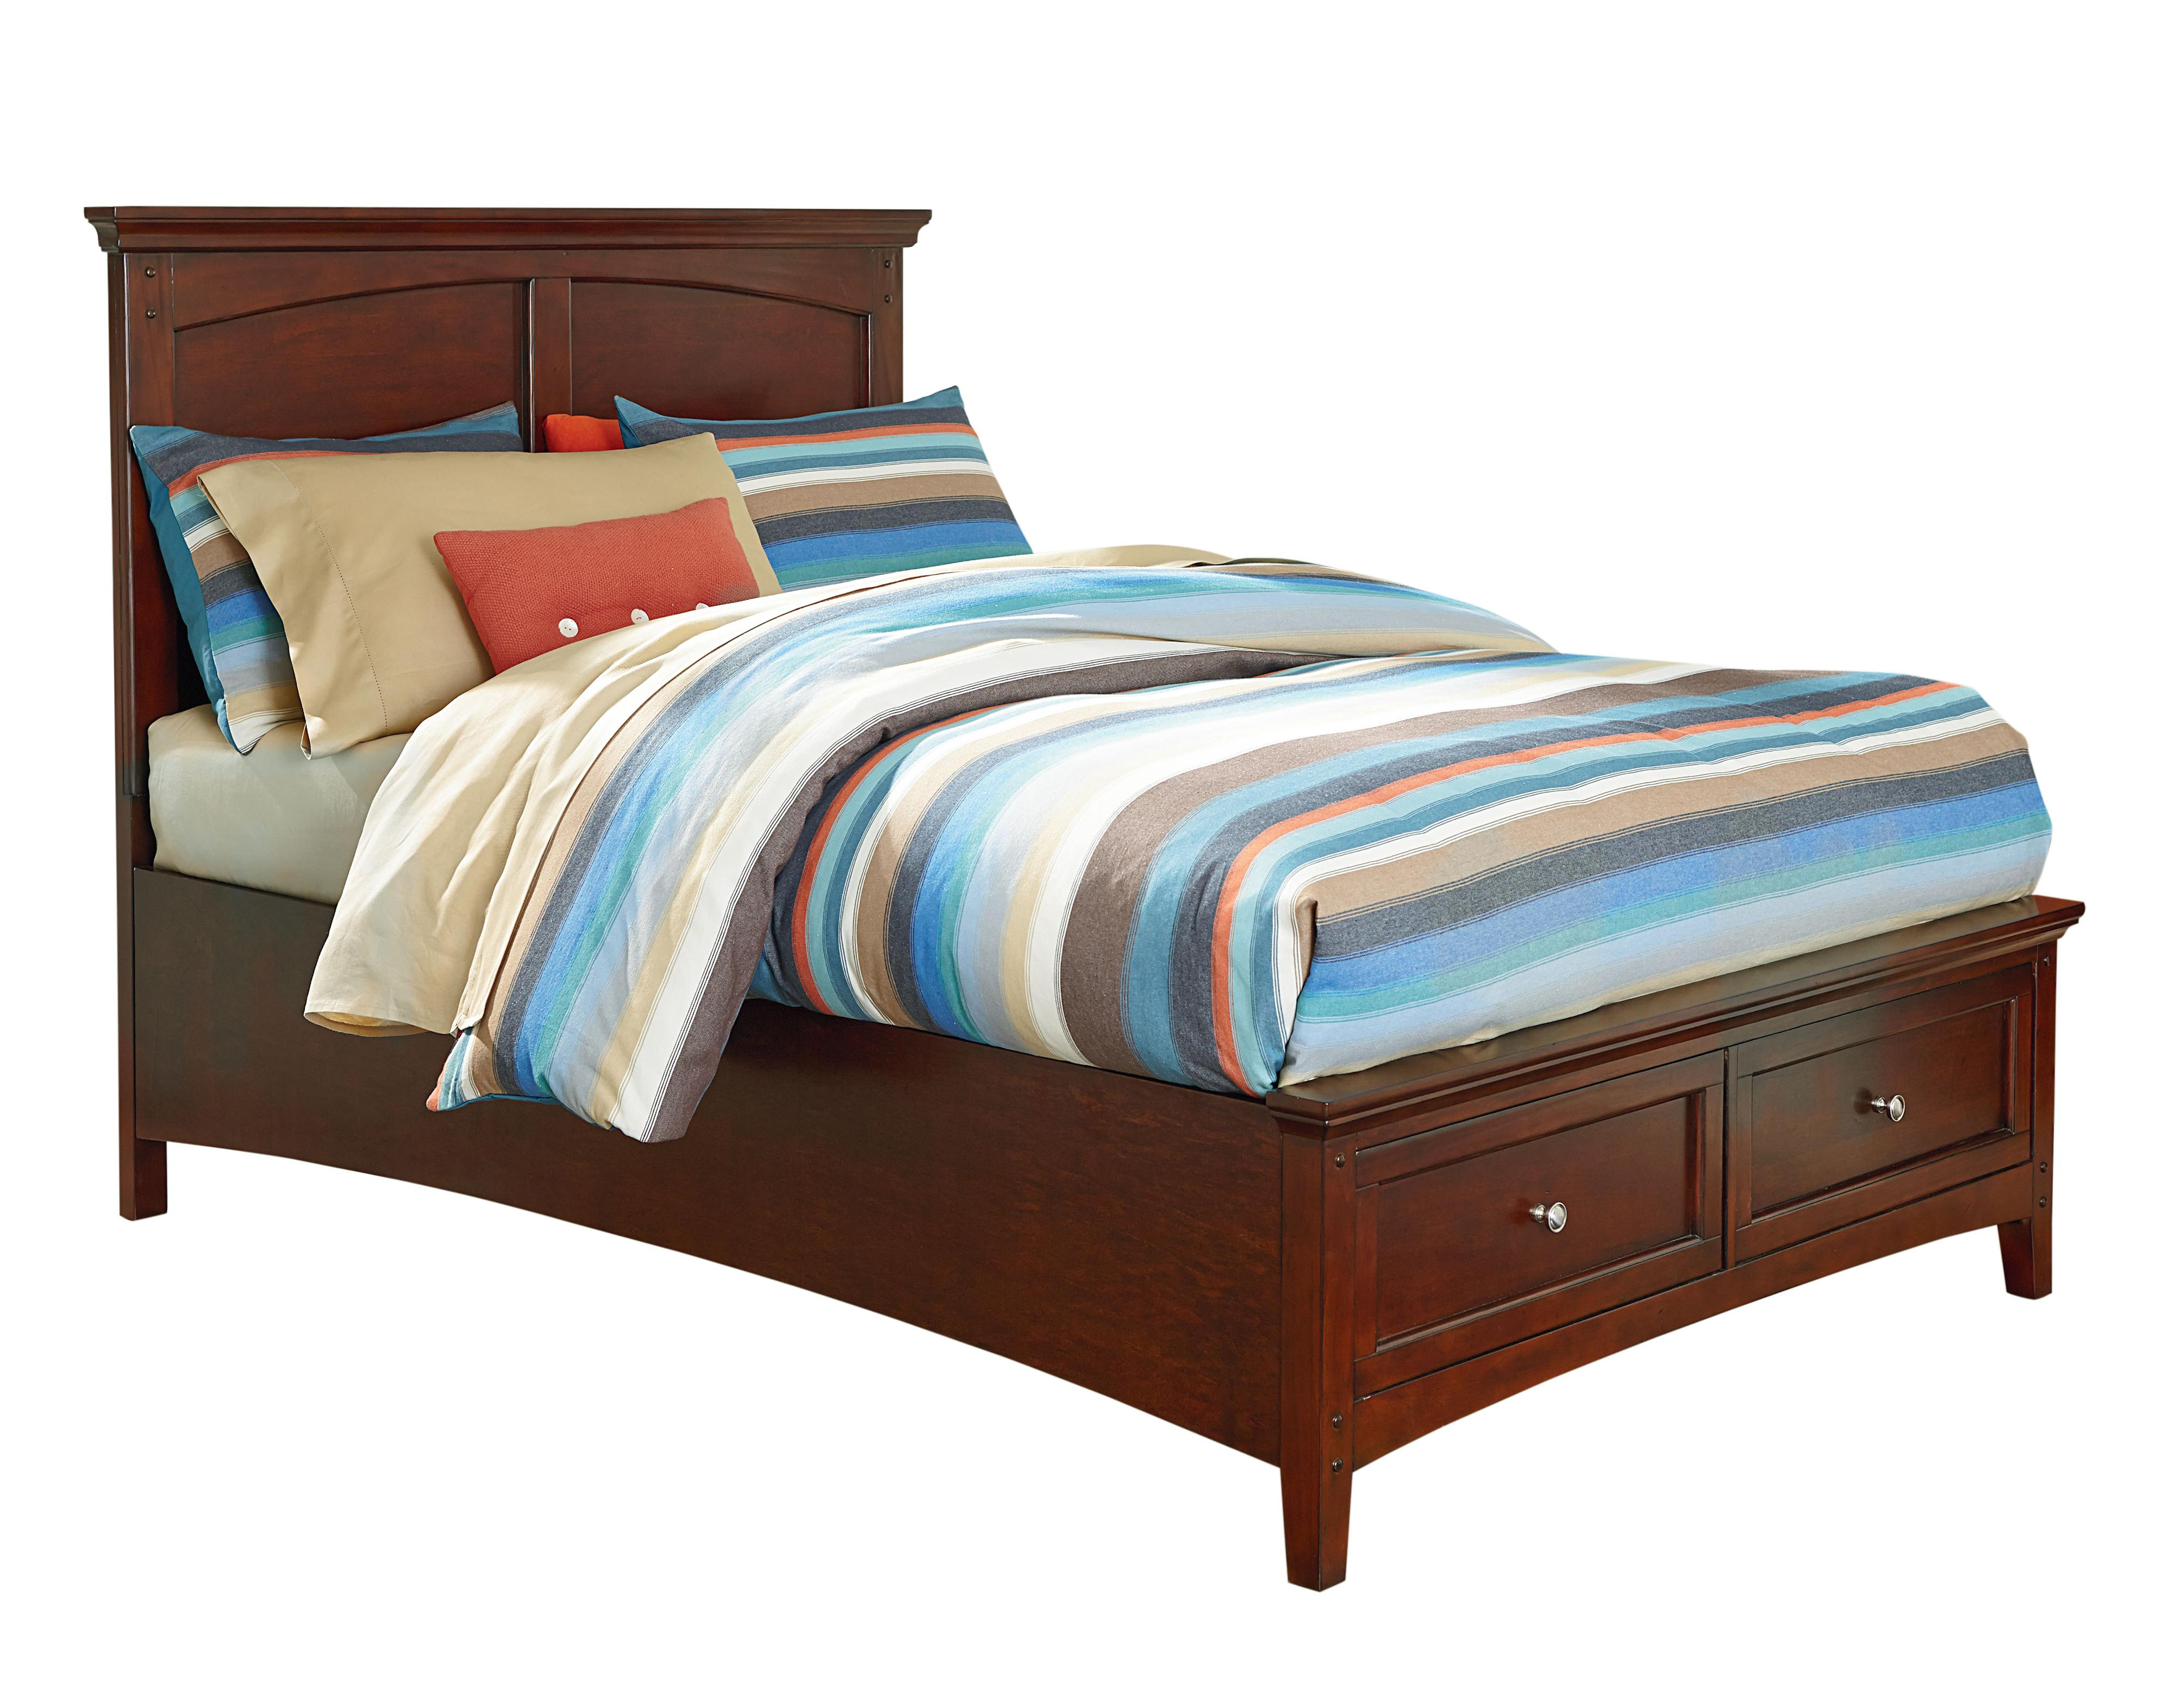 standard furniture cooperstown full storage bed item number 938444542